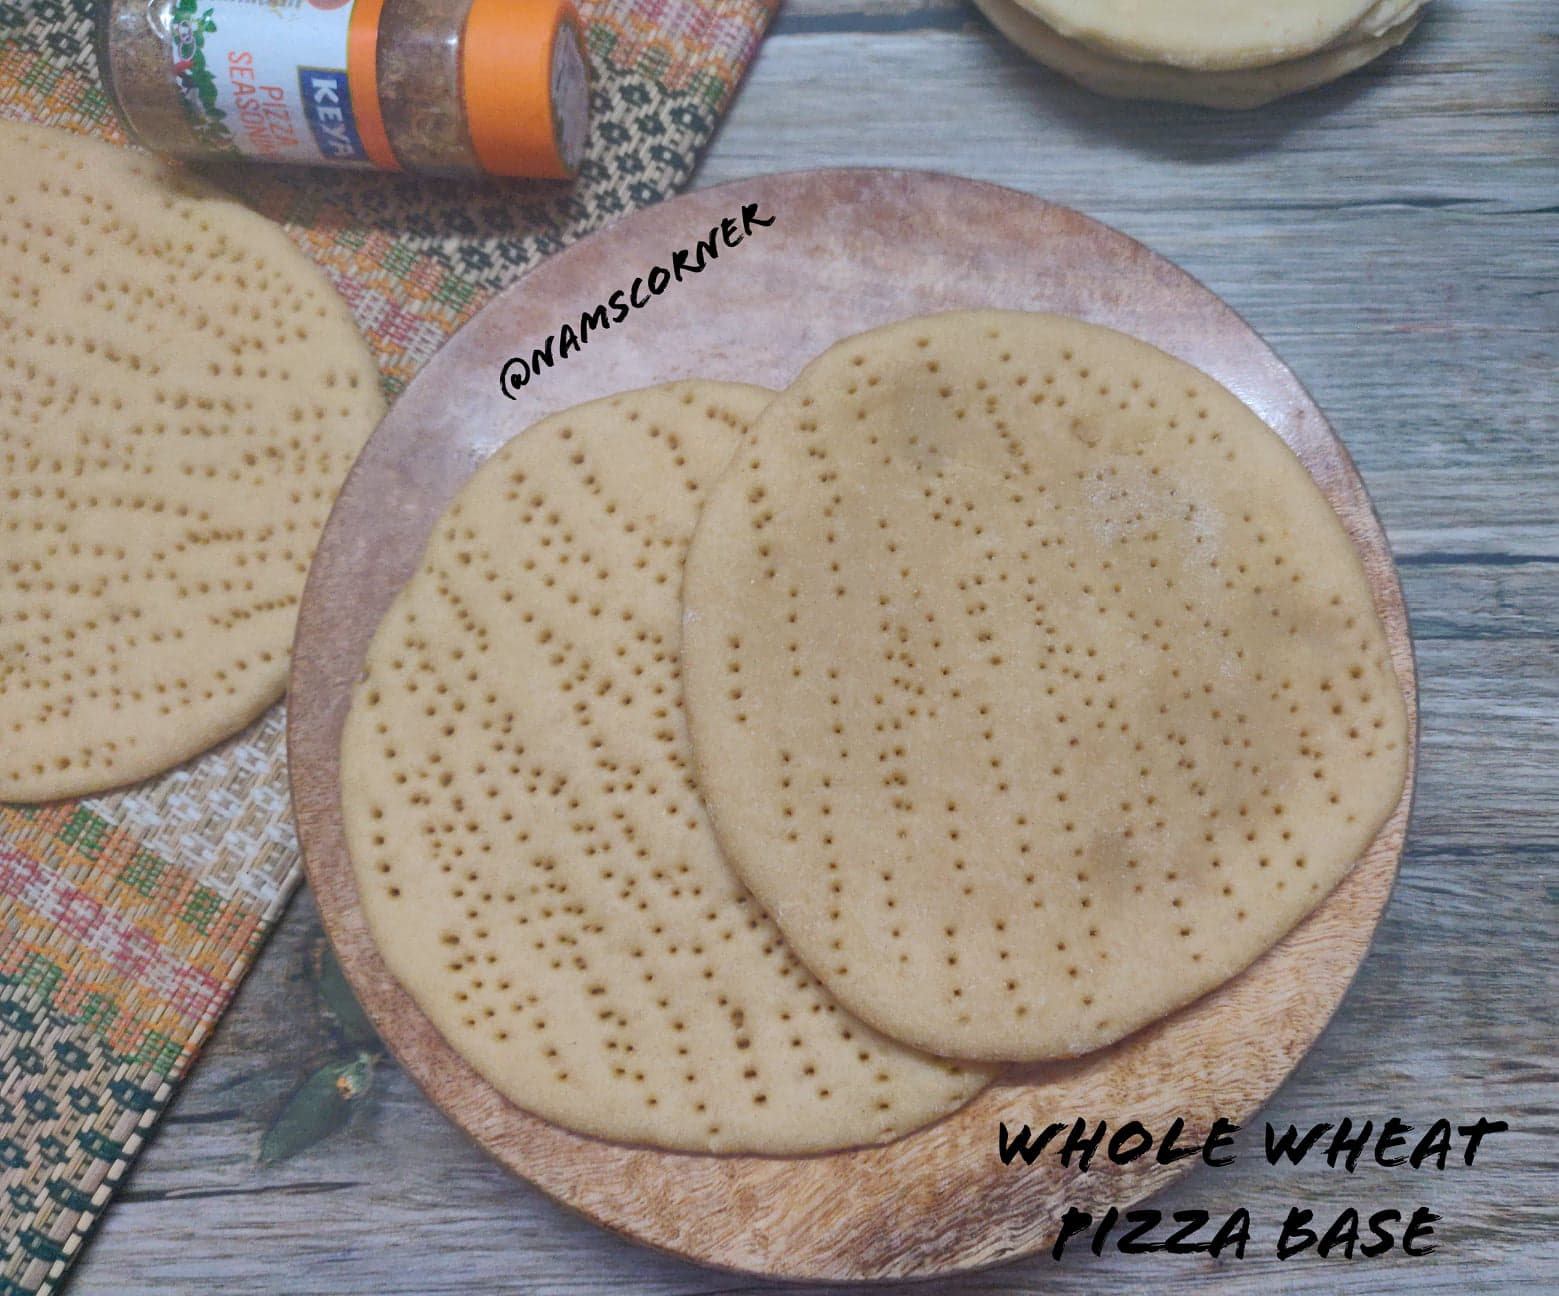 Whole Wheat Pizza Base Recipe | Whole Wheat Pizza Dough | Homemade Wheat Pizza Crust without oven